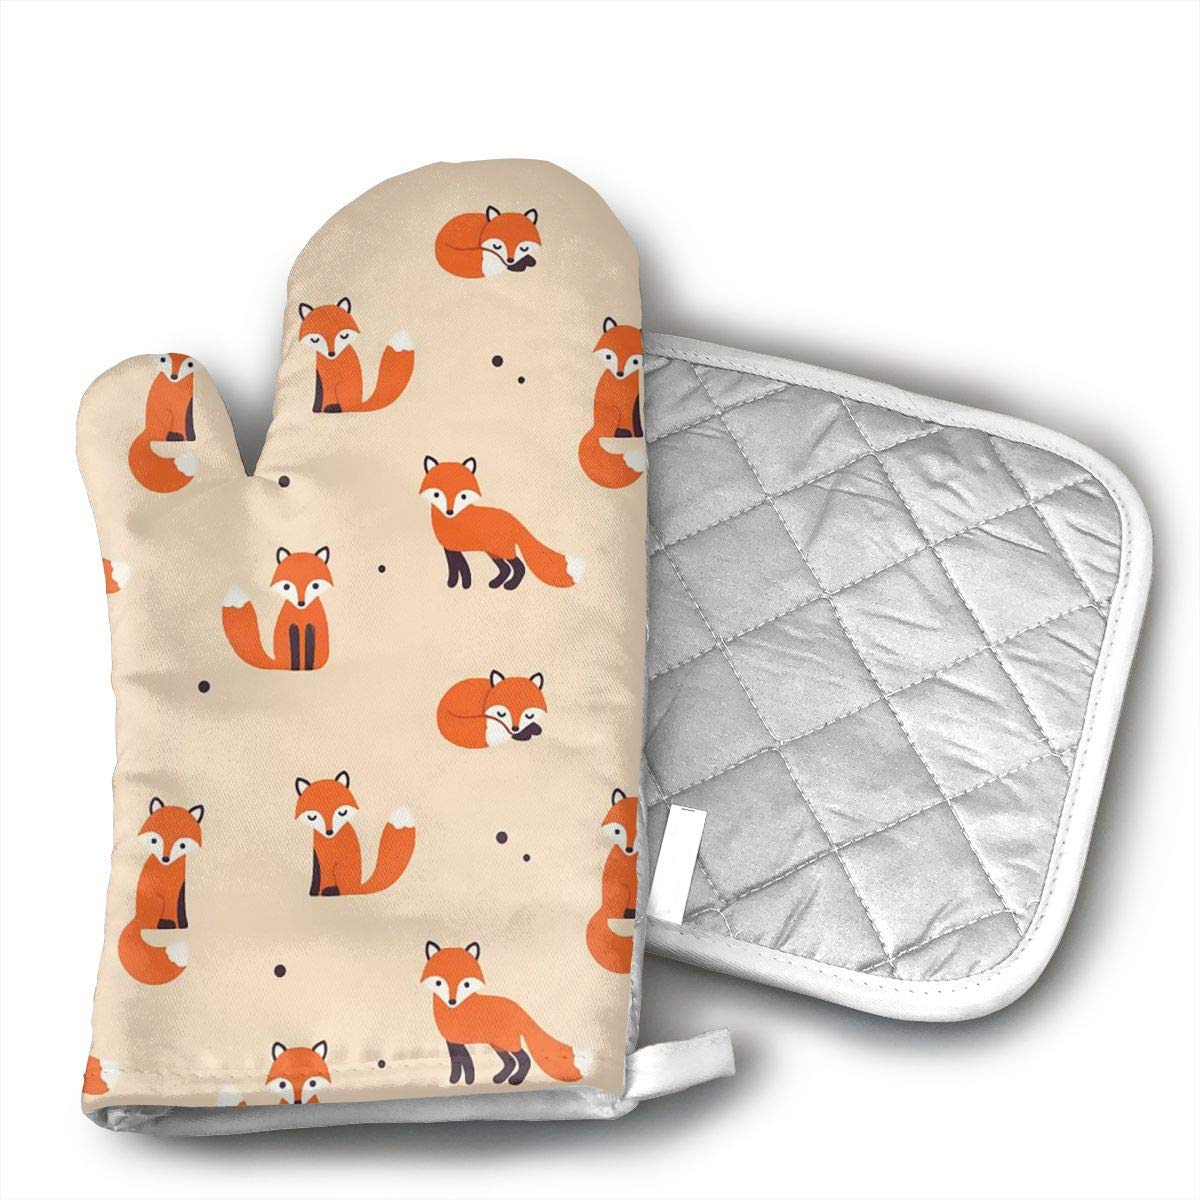 Vintage Cute Little Red Fox Oven Mitt and Pot Holder Set(1Hot Pads and 1 Potholders) for Kitchen Cooking Baking Grilling Heat Resistant